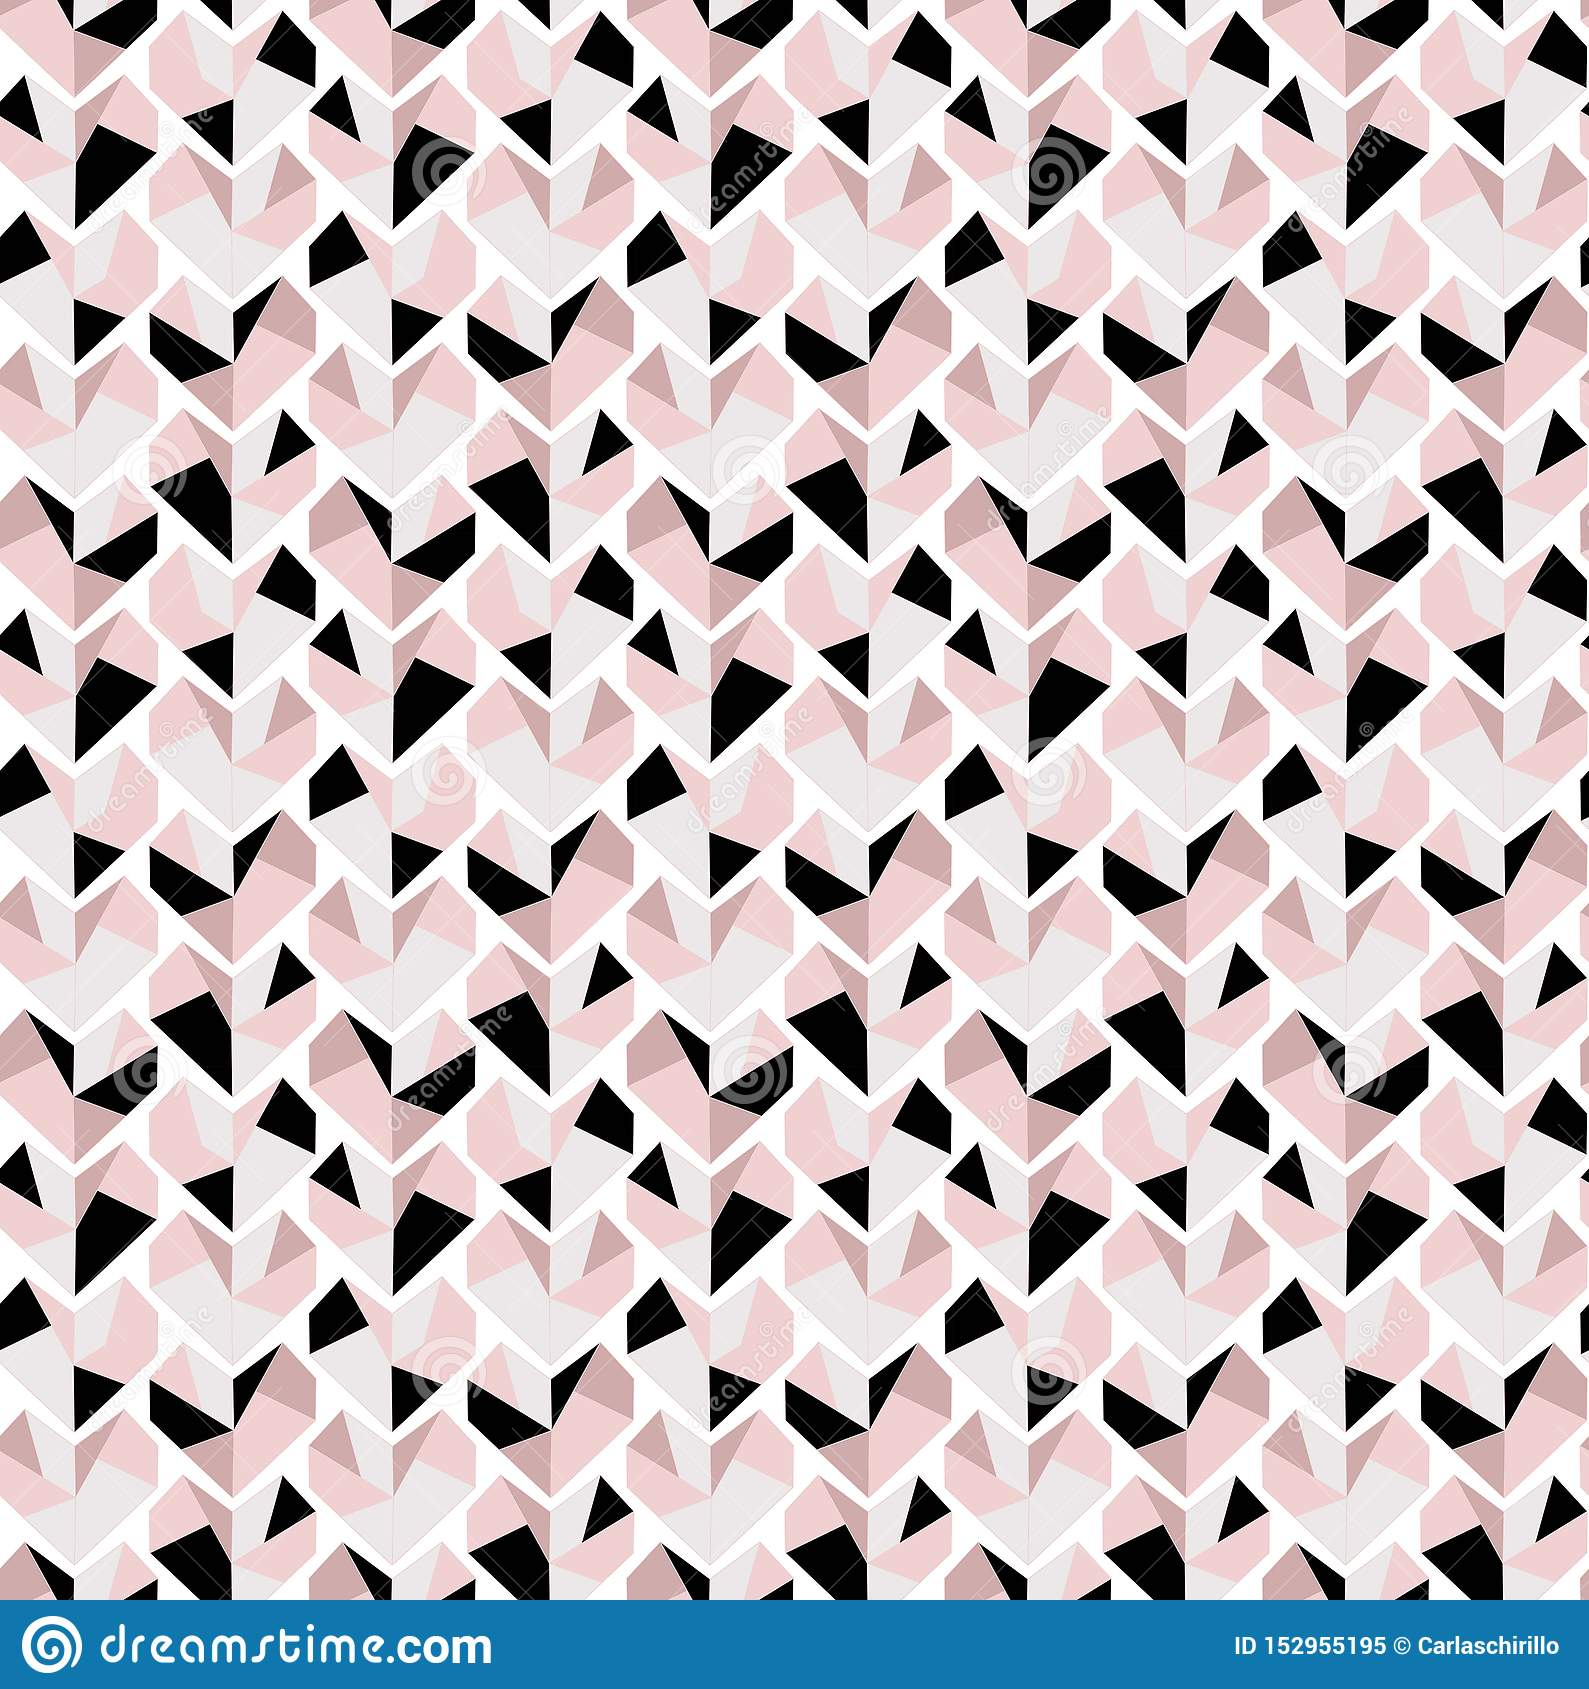 Very delicate Diamond heart seamless pattern in grey black and pink tones